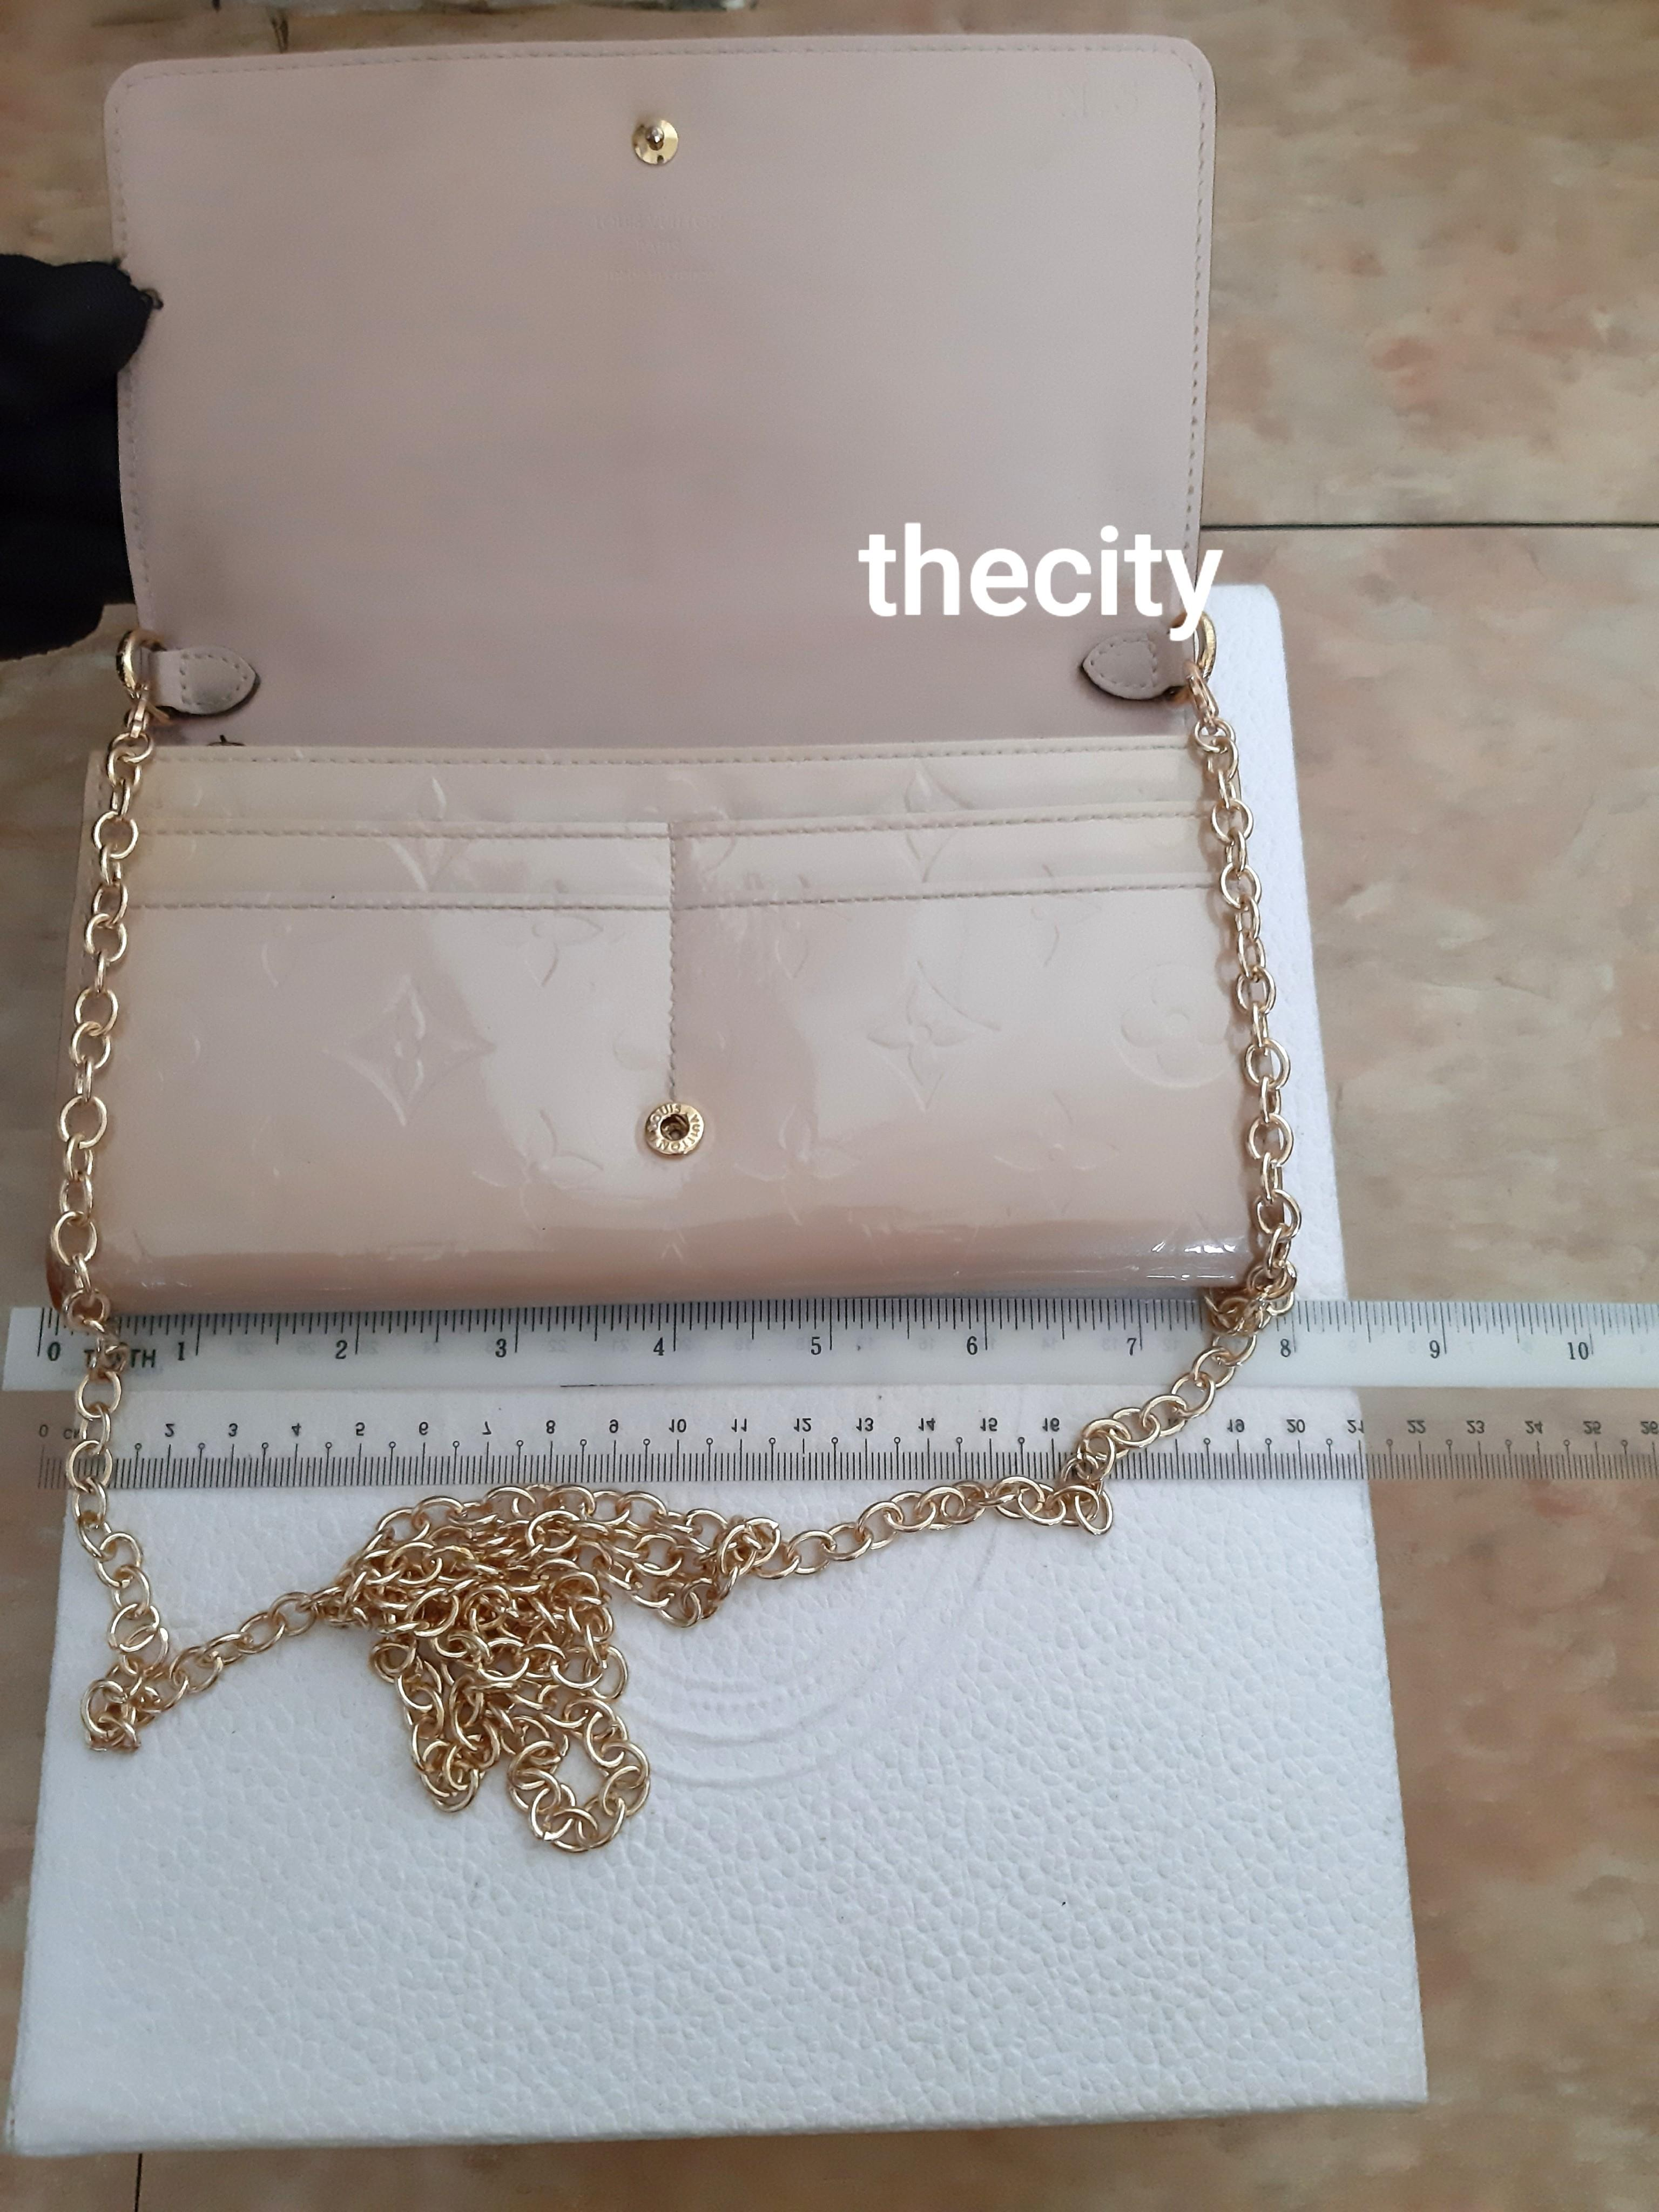 AUTHENTIC LOUIS VUITTON SHINY PATENT LEATHER VERNIS MONOGRAM WOC / SLING BAG- CLEAN INTERIOR - DATECODE: TN 3193 - GOLD HARDWARE - NEWLY ADDED CHAIN- IN GOOD CONDITION- (RETAILS AROUND RM 5000+